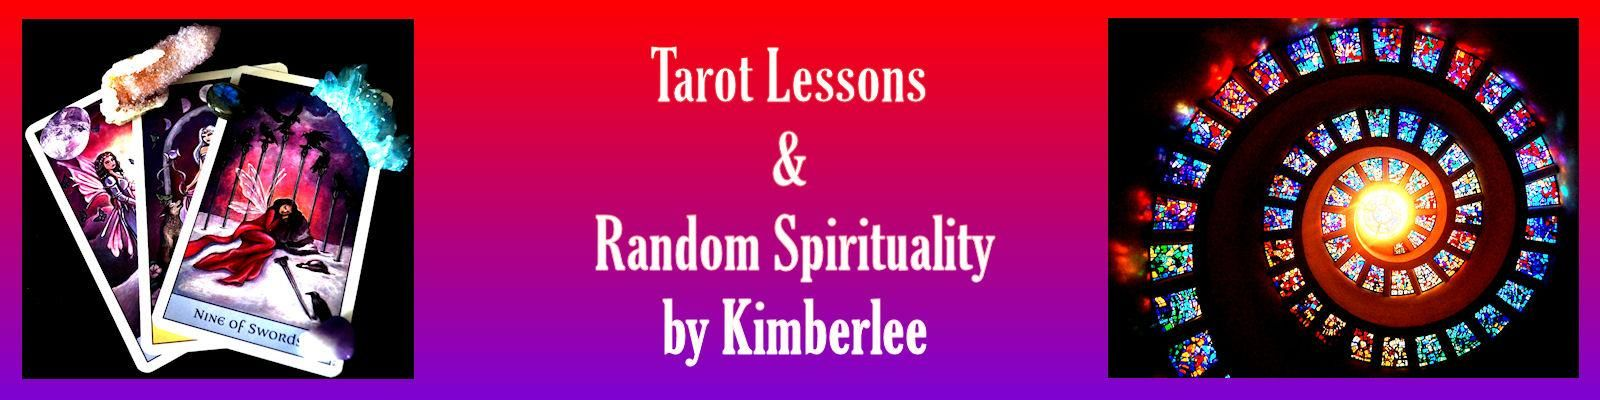 Tarot Lessons & Random Spirituality by Kimberlee on Patreon. Support & Share the Love! <3